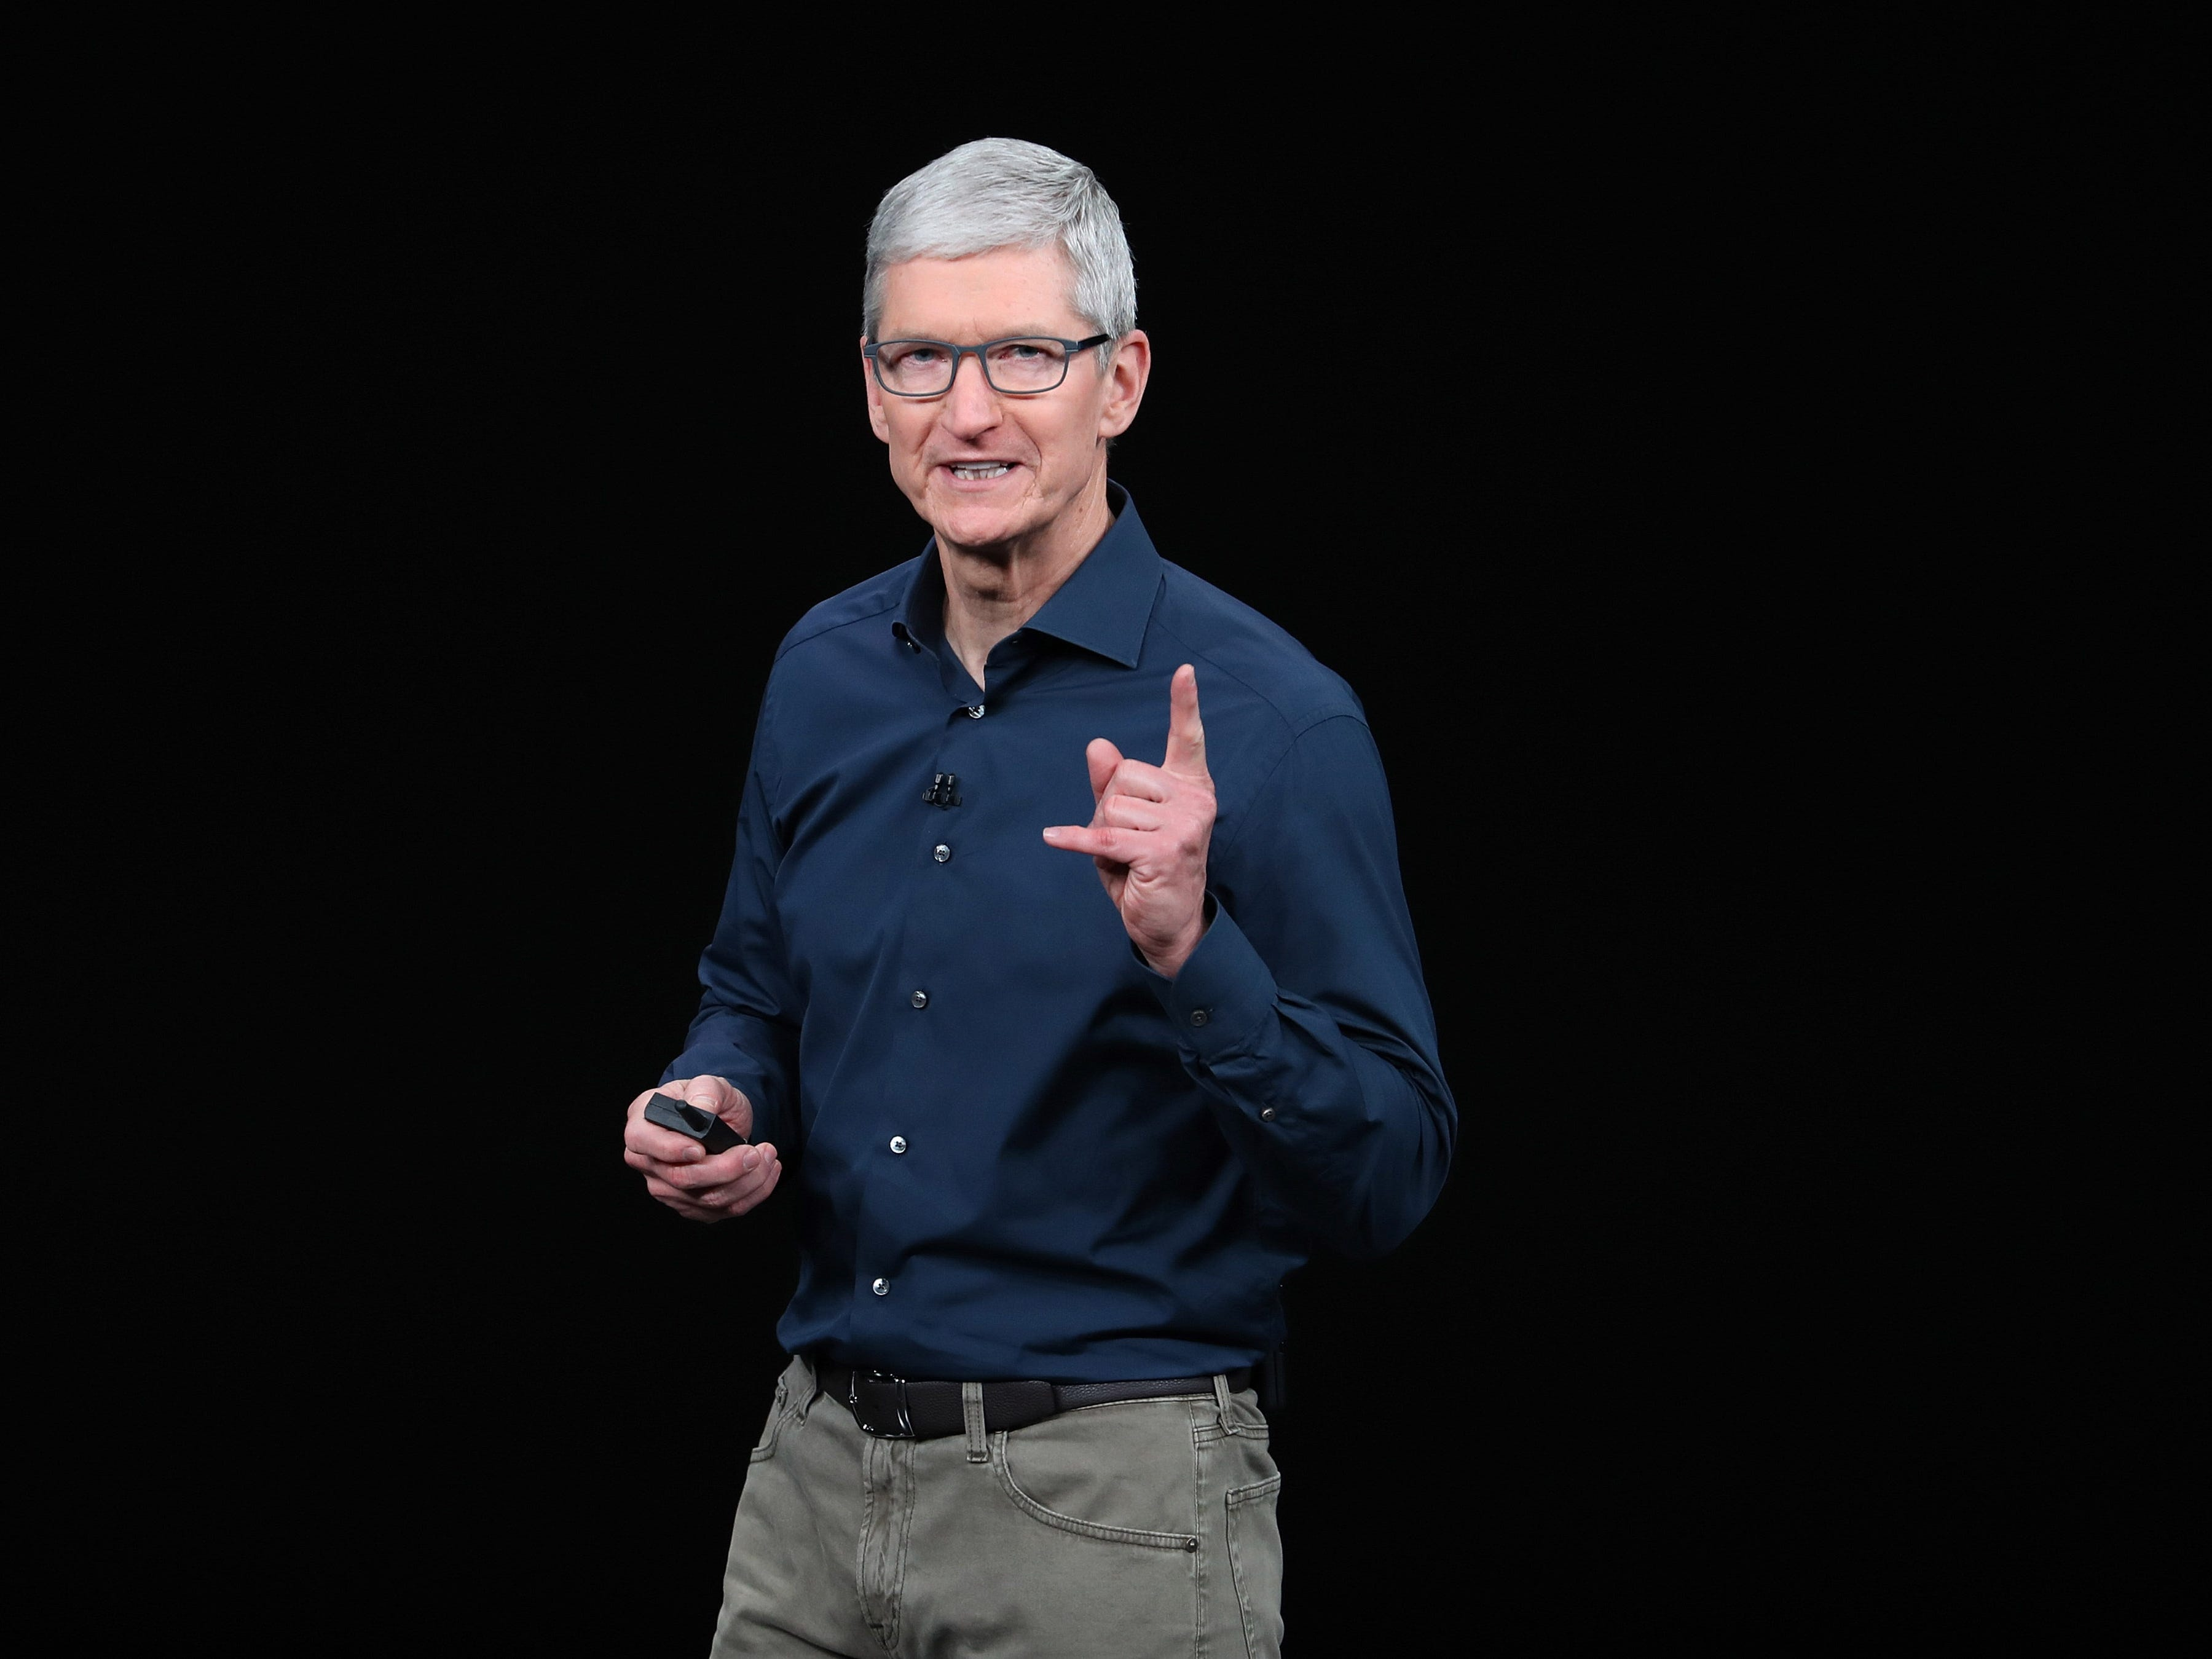 Tim Cook, chief executive officer of Apple,  speaks during an Apple event at the Steve Jobs Theater at Apple Park on Sept. 12, 2018 in Cupertino, Calif.